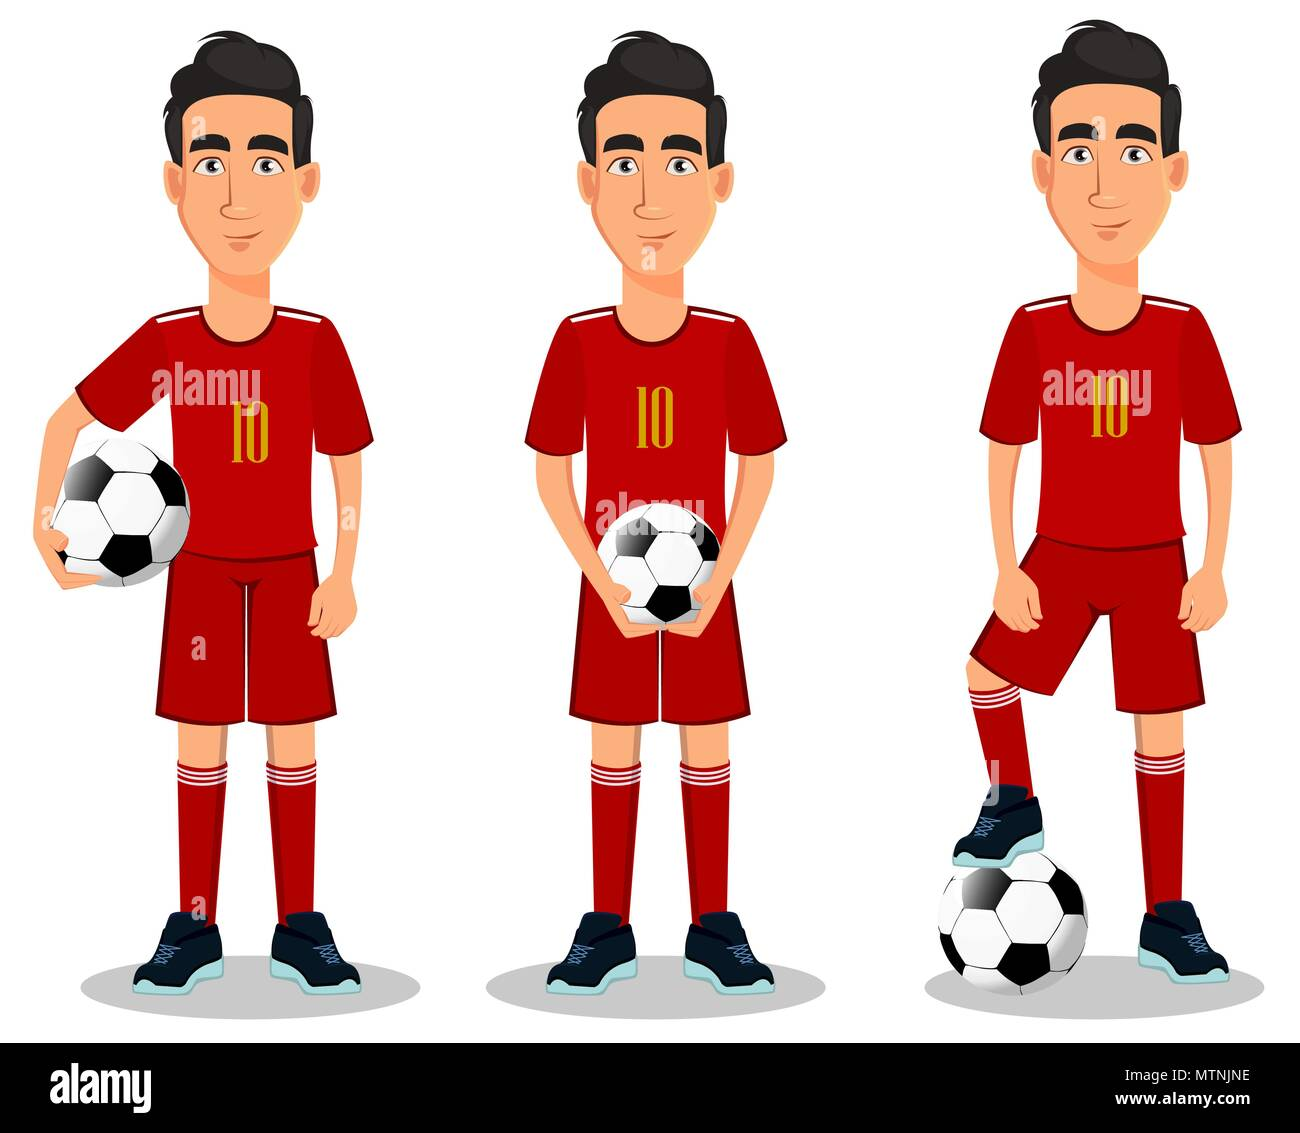 Football player in red uniform, set of three poses. Handsome cartoon character with soccer ball. Vector illustration on white background. - Stock Vector